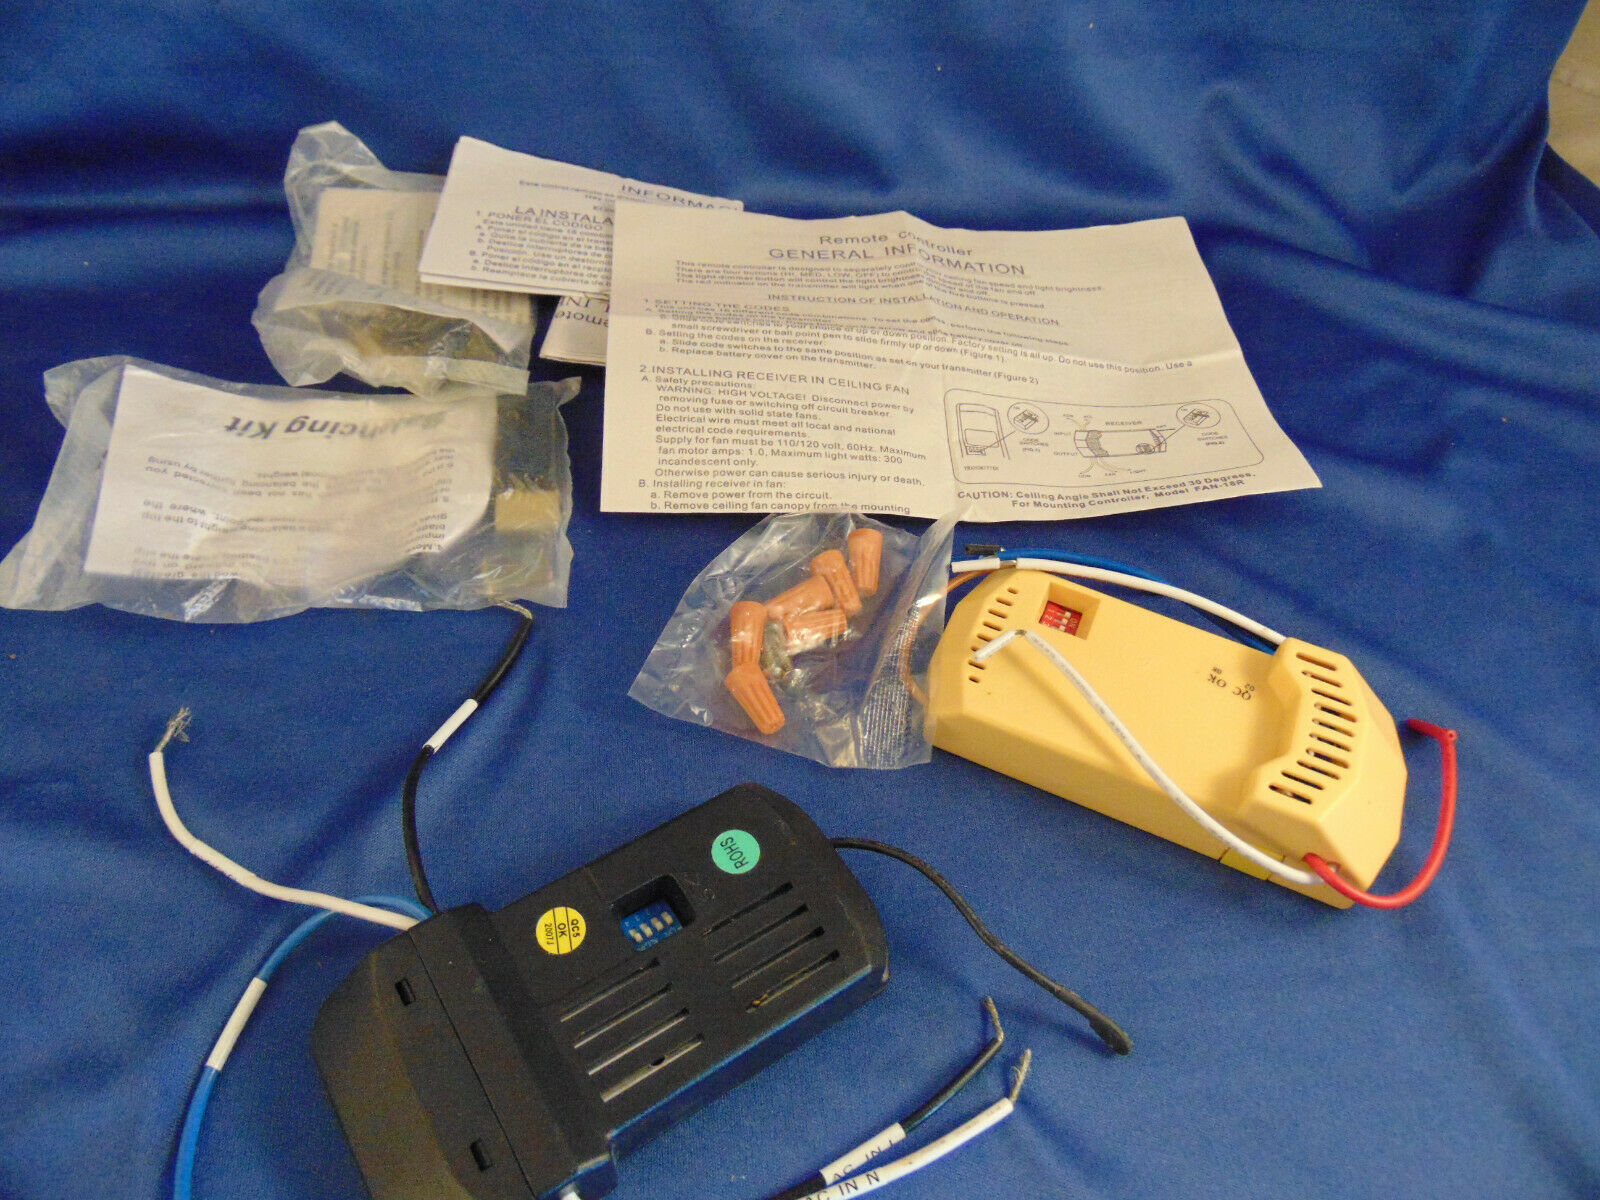 2 Ceiling fan remote control install instructions model UC7067RC solid state fan